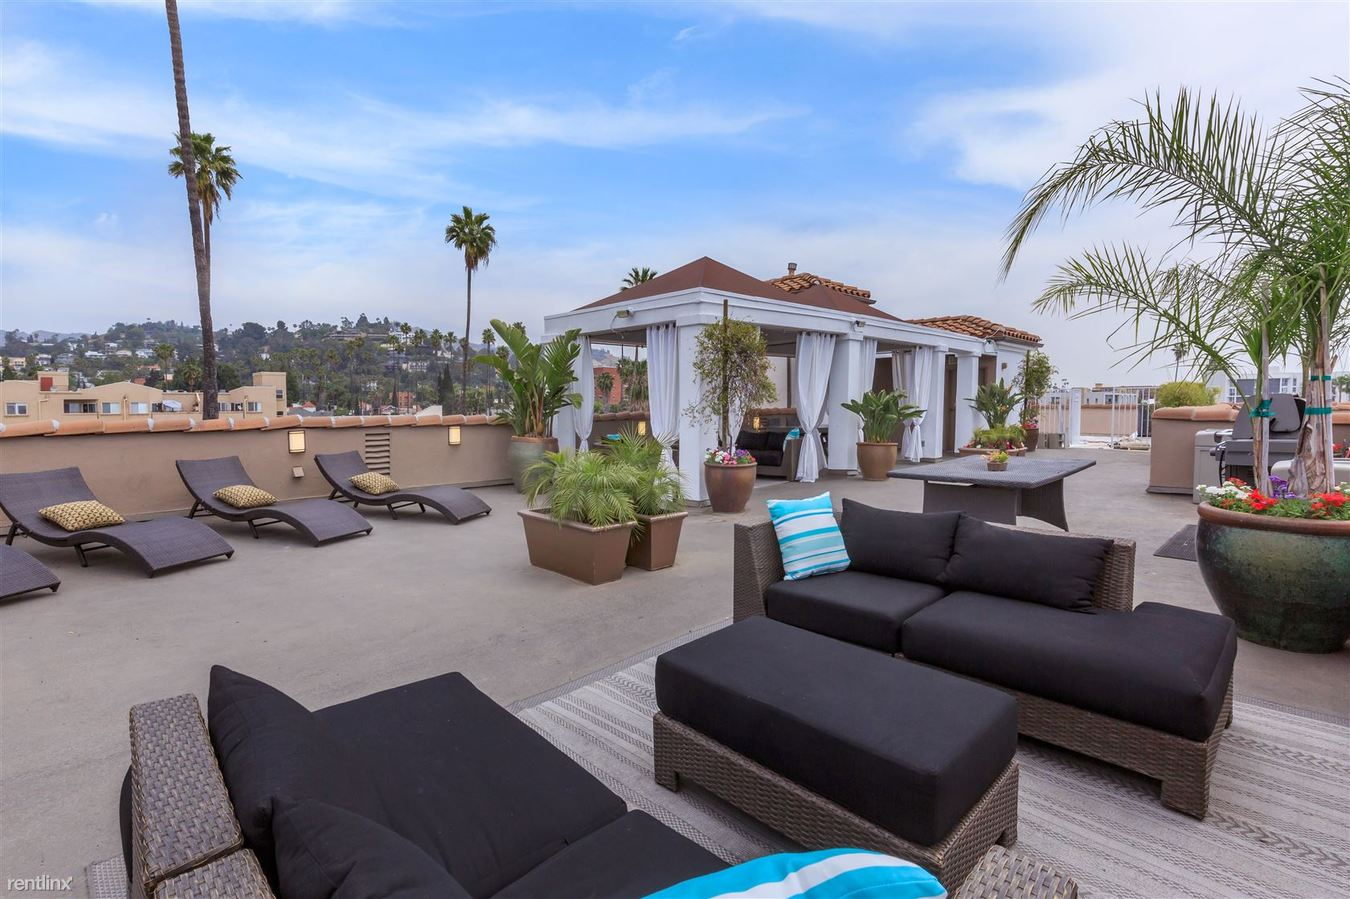 1 Bedroom 1 Bathroom Apartment for rent at Hollywood View Towers in Los Angeles, CA